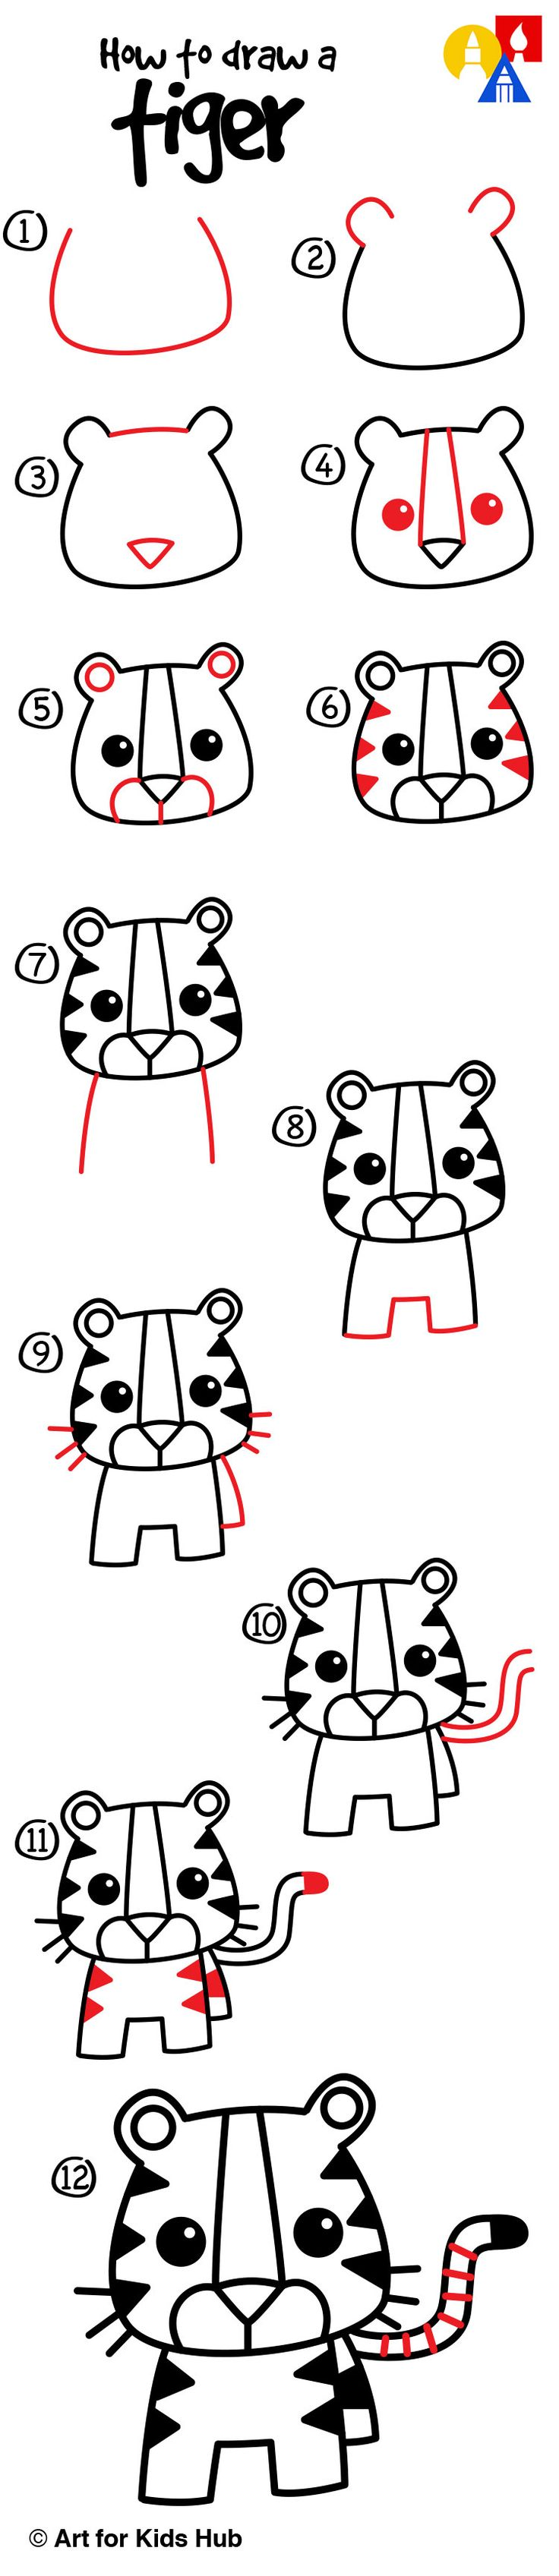 Bathroom drawing for kids - How To Draw A Cartoon Tiger Art For Kids Hub